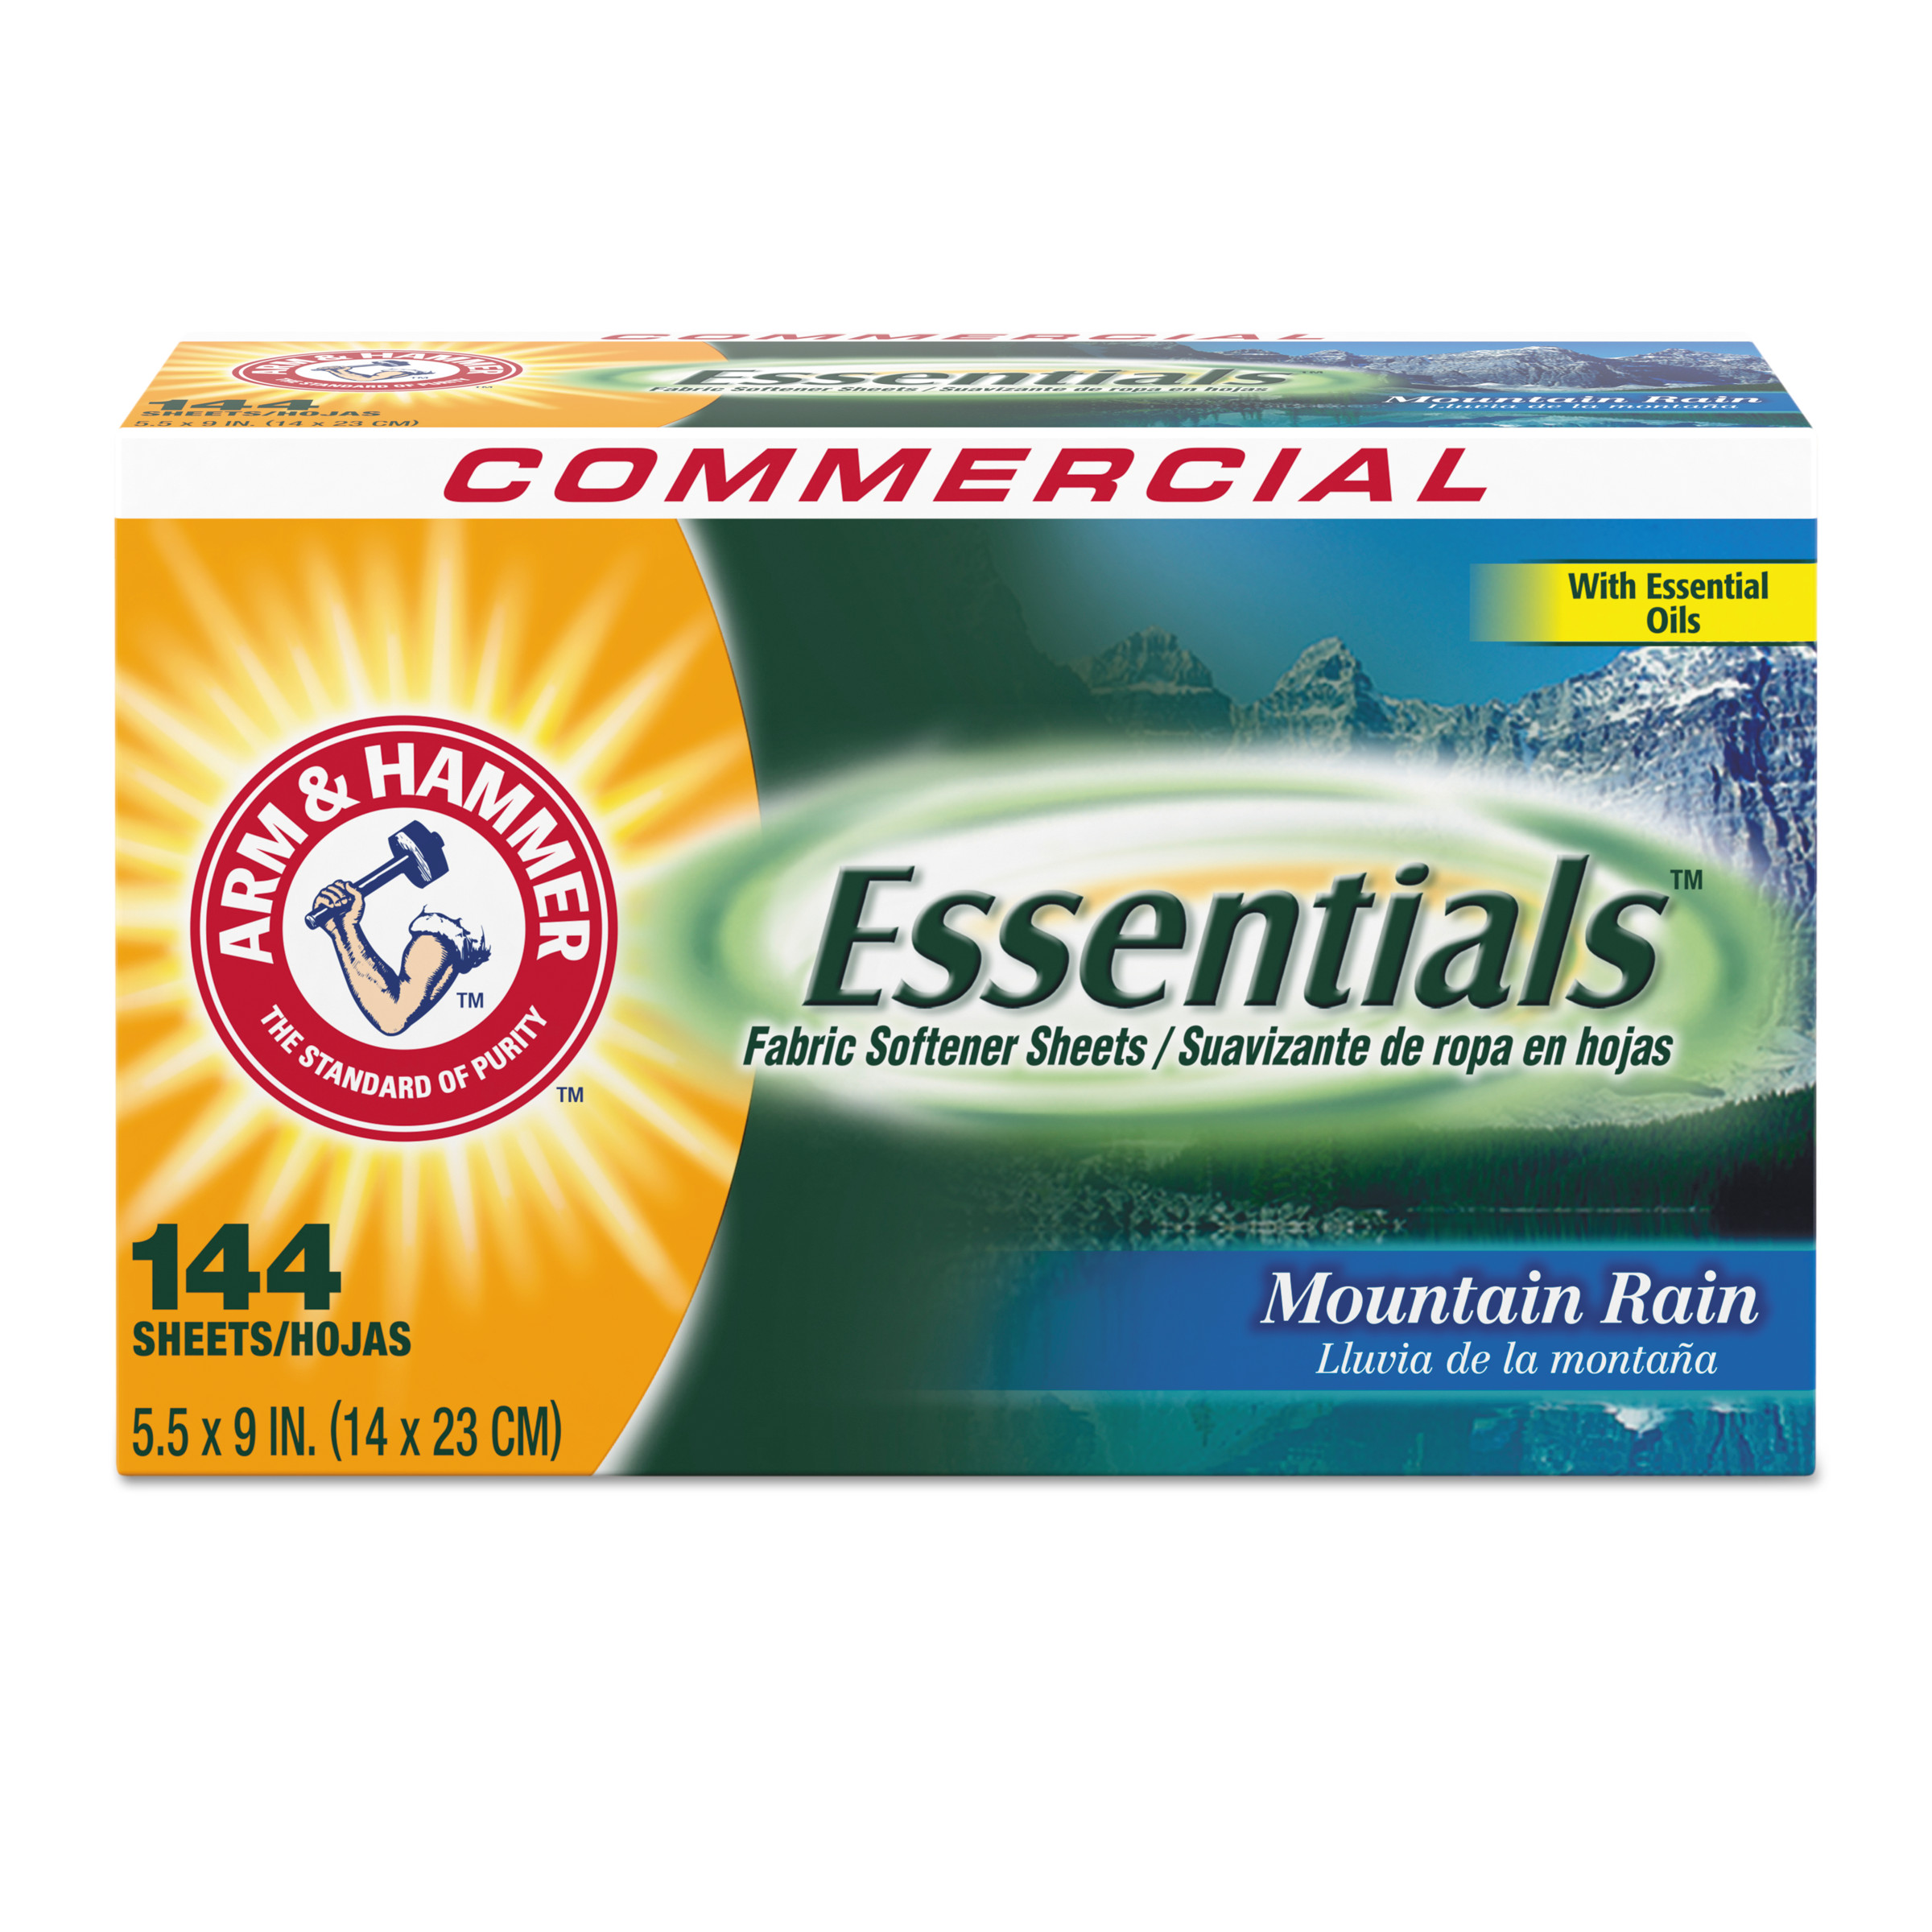 Arm & Hammer Essentials Mountain Rain Fabric Softener, 144 sheets, 6 count